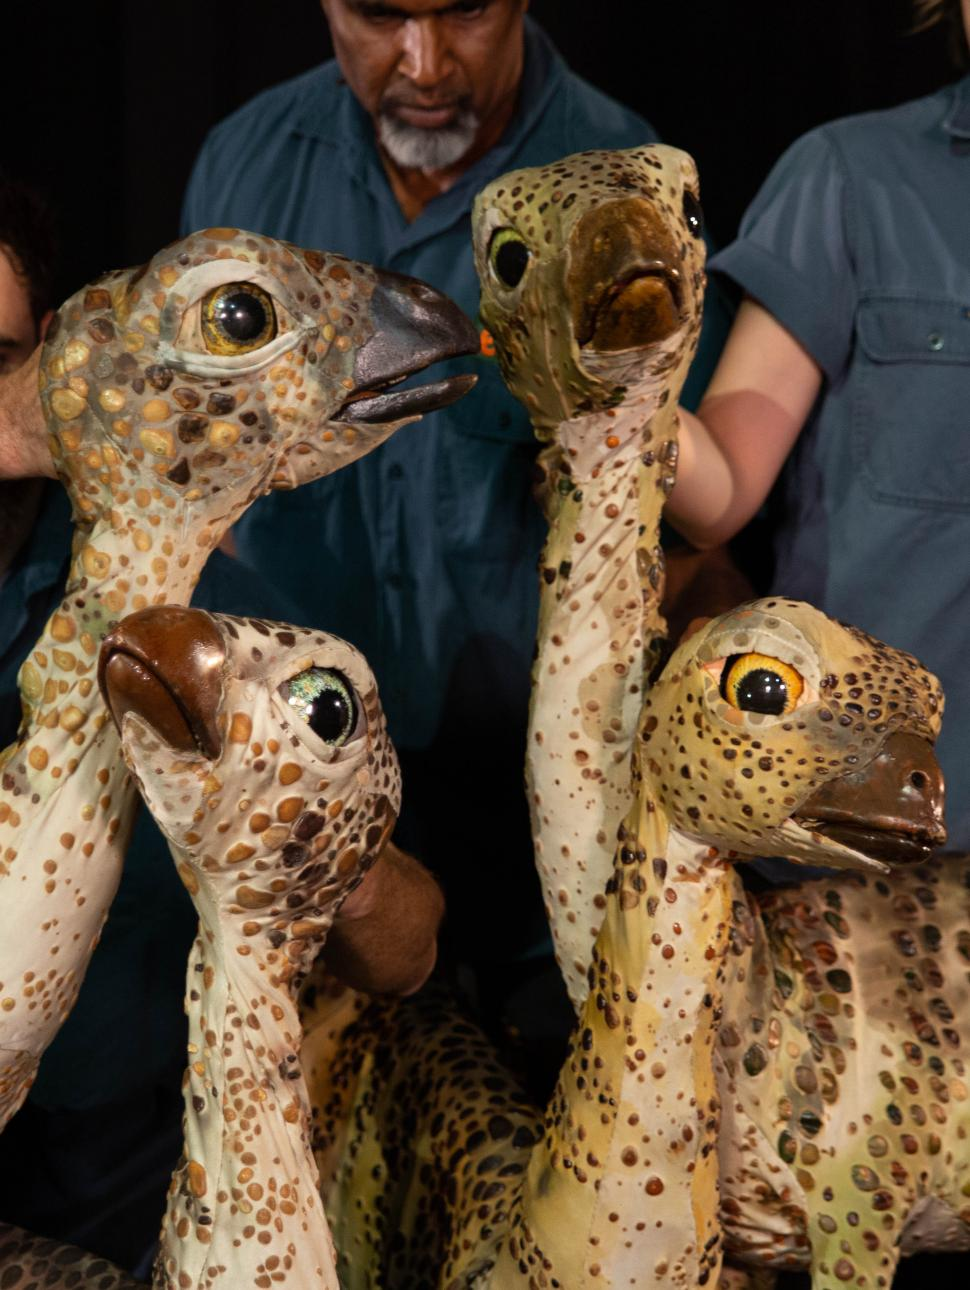 Puppeteers from Erth's Dinosaur Zoo pose with a group of dinosaur puppets